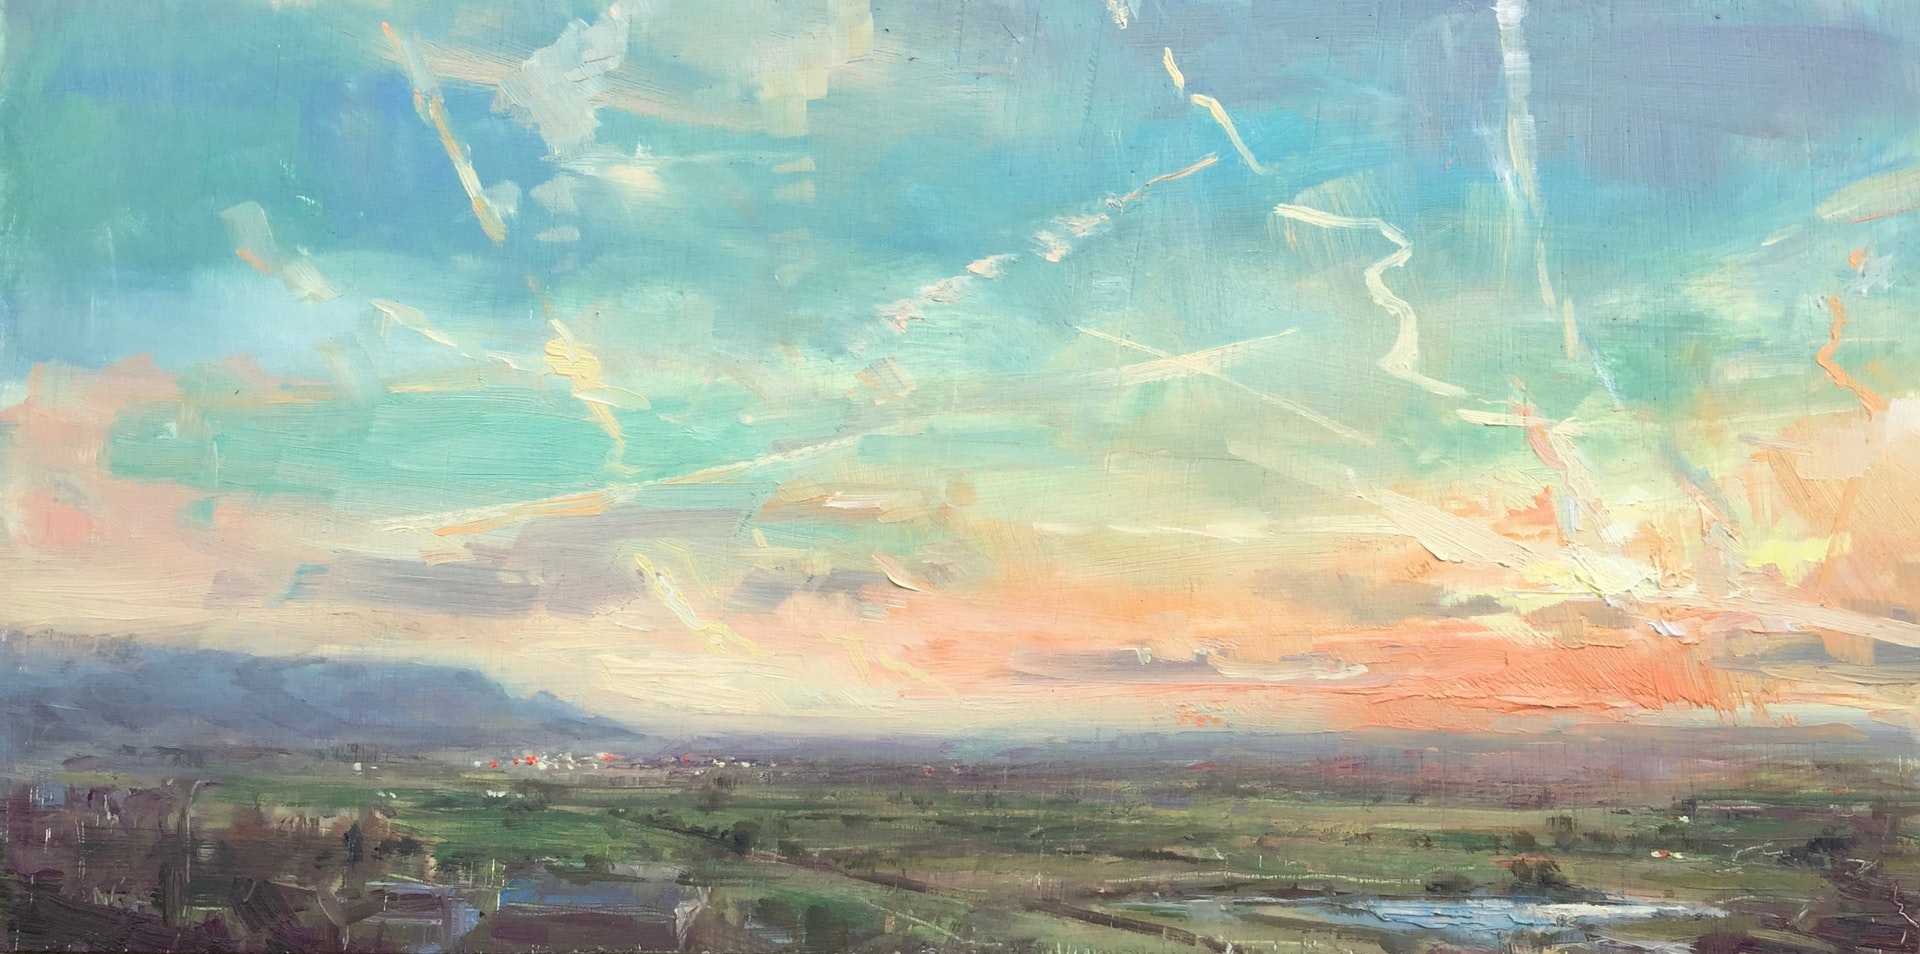 'From Callow Hill', Georgina Potter, Oil on board, 40 x 20.5 x 1 cm